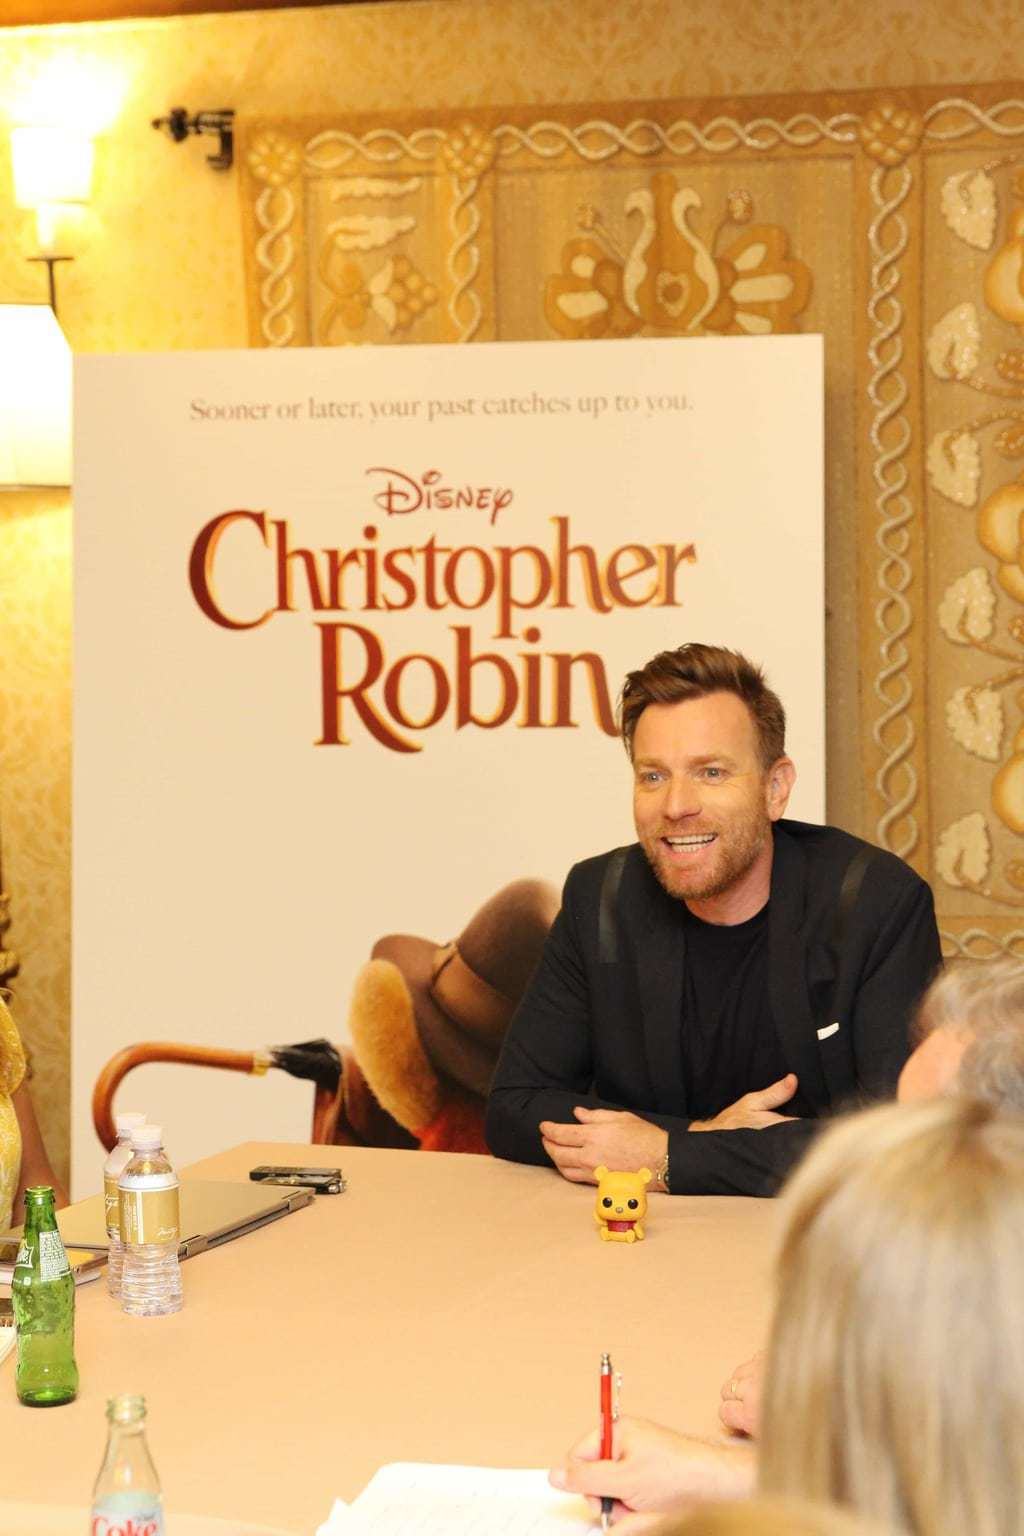 Exclusive Interview with Ewan McGregor in Disney's Christopher Robin #ChristopherRobinEvent